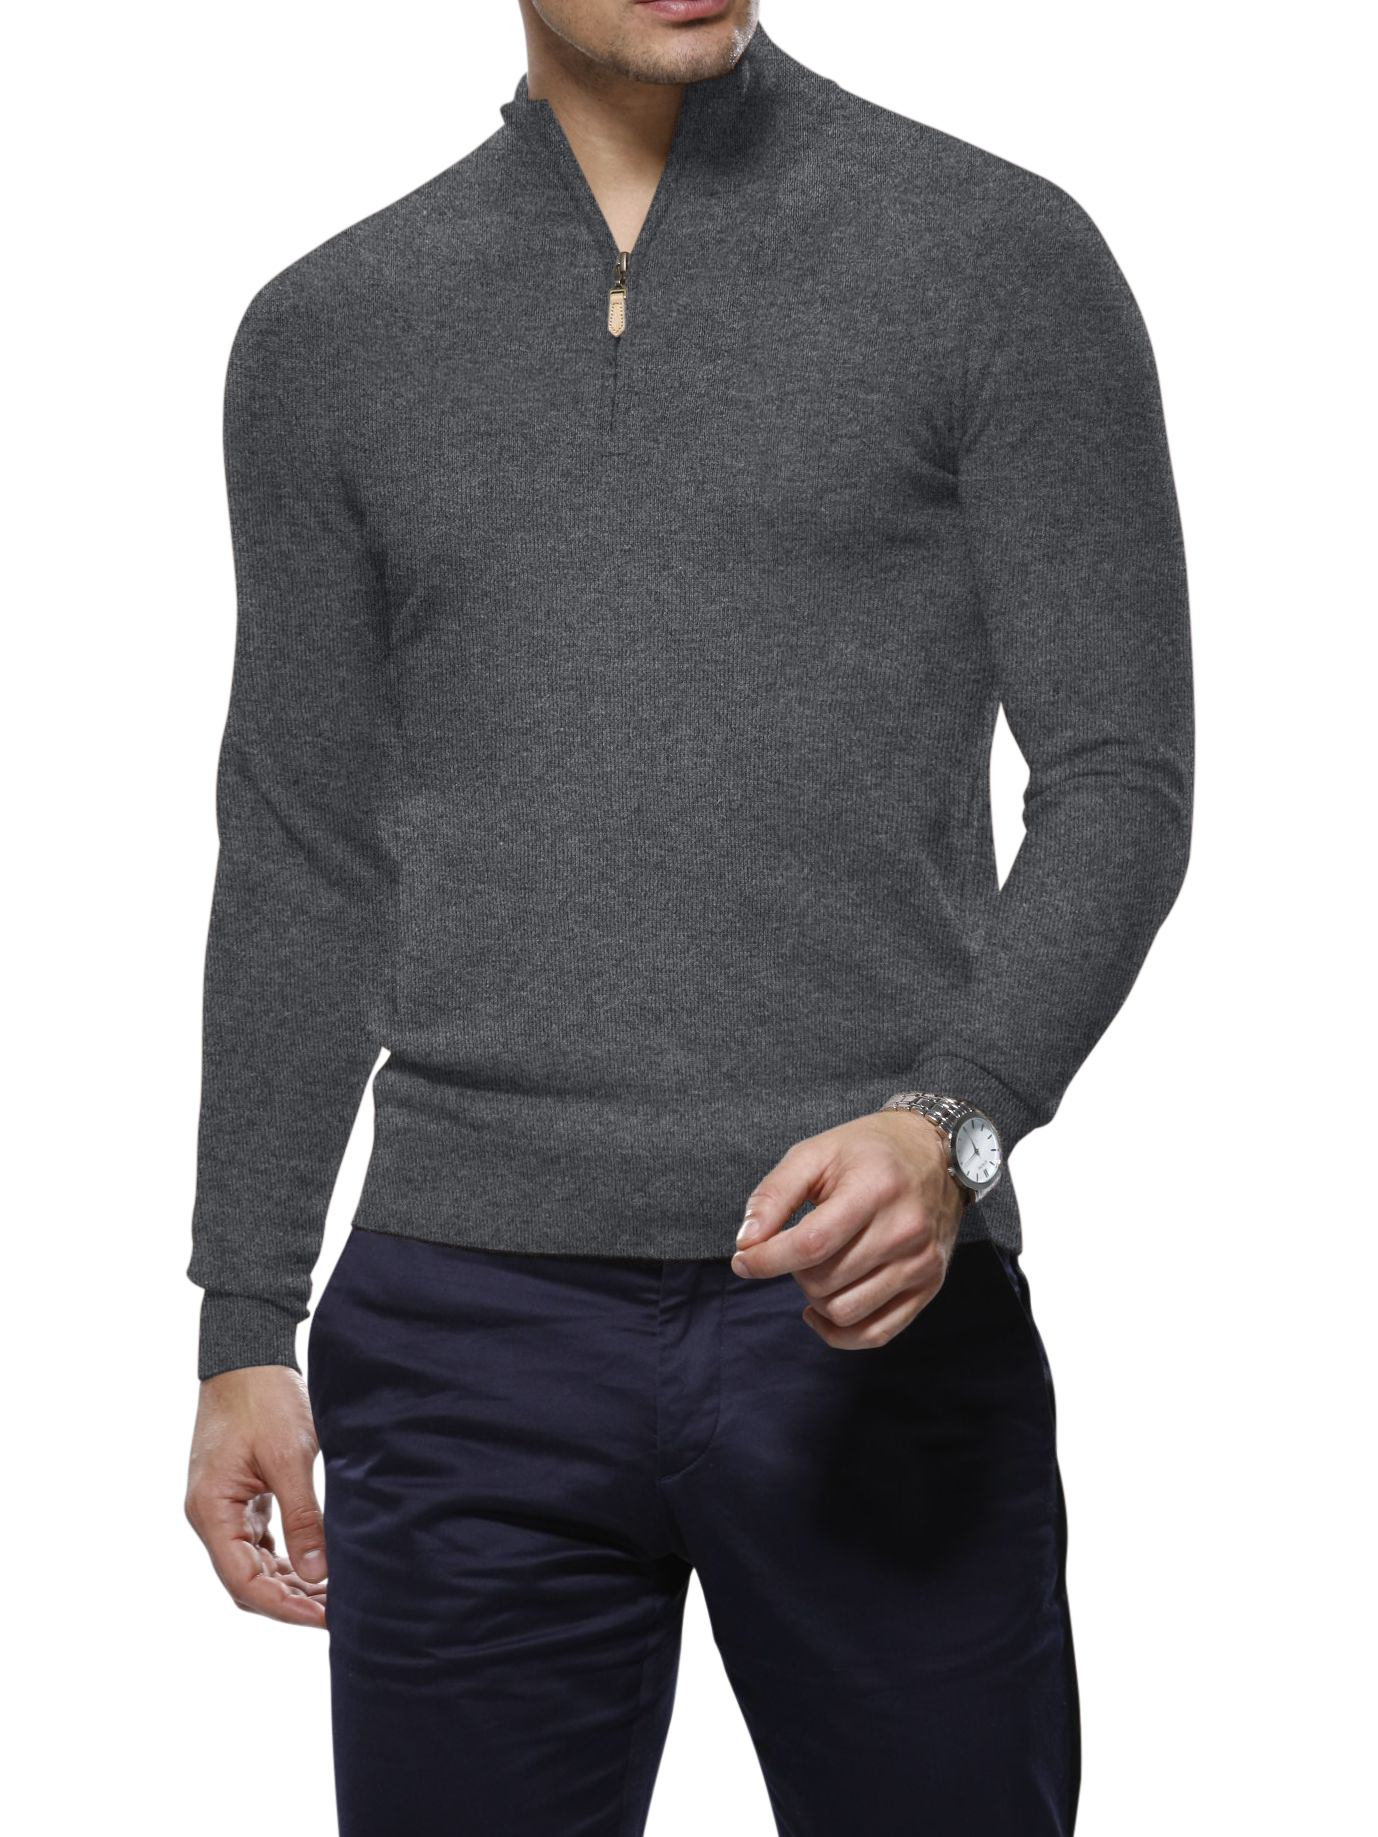 Grey Merino Wool 1/4 Zip Mock Sweater